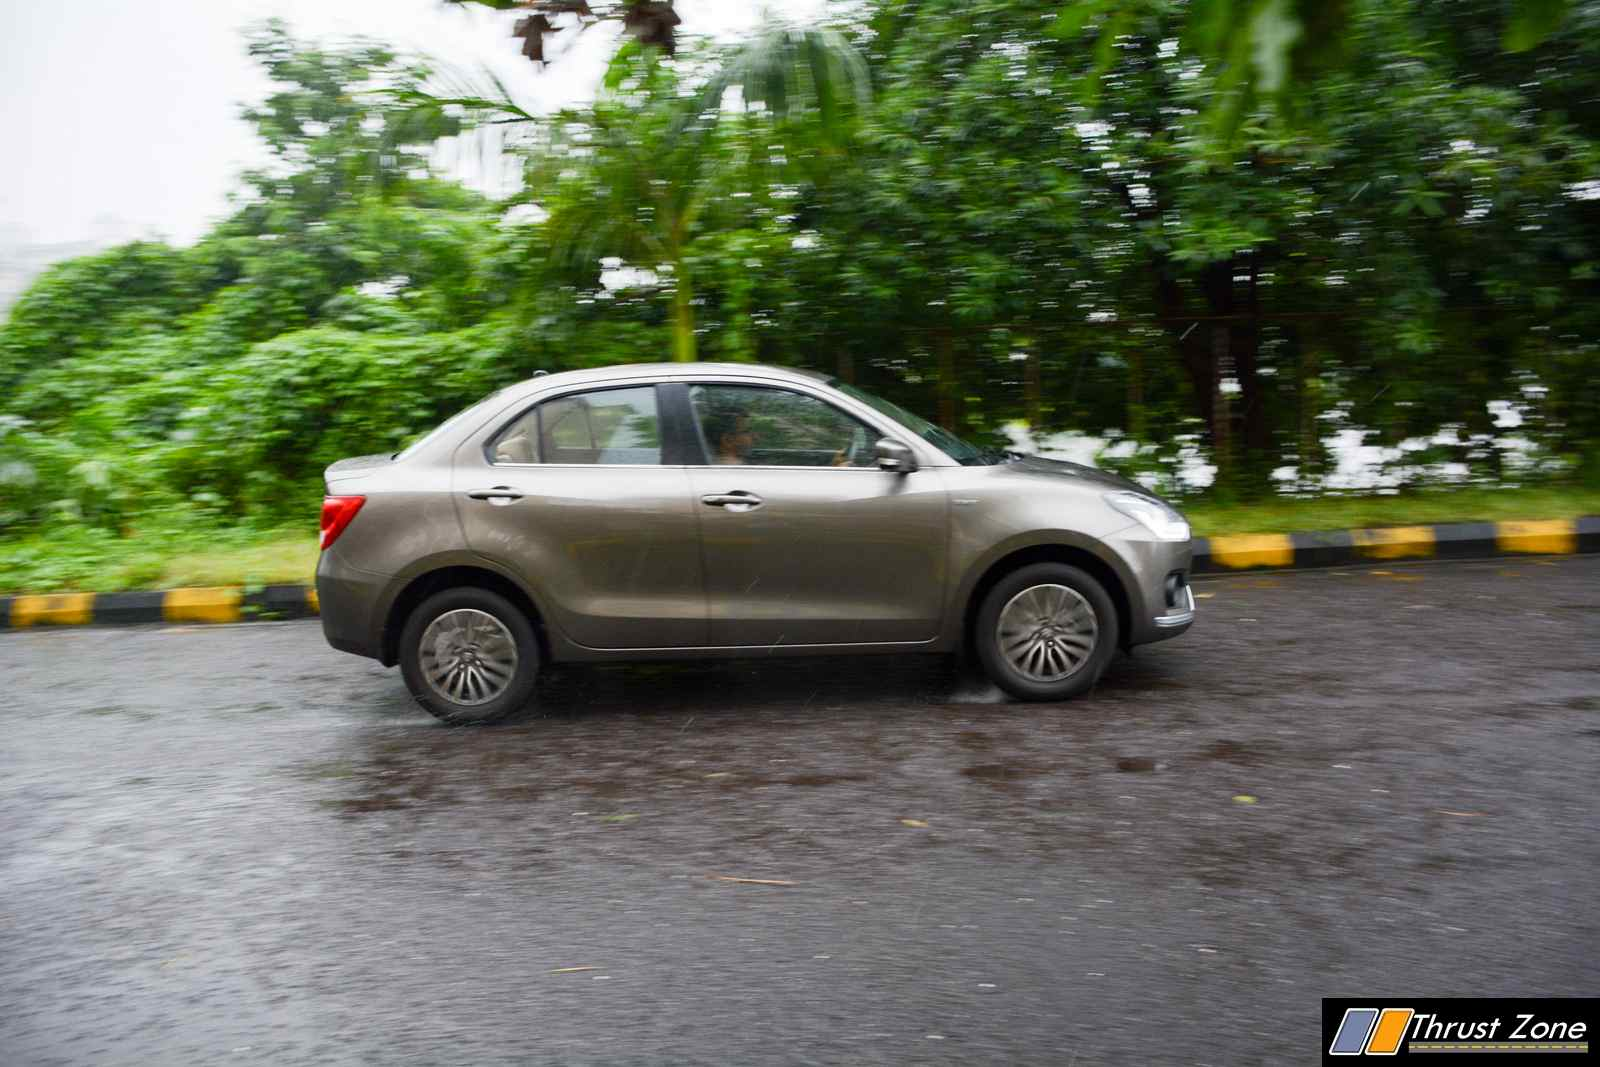 https://www.thrustzone.com/wp-content/uploads/2017/10/Honda-Amaze-vs-Maruti-Dzire-Petrol-Comparison-Review-14.jpg